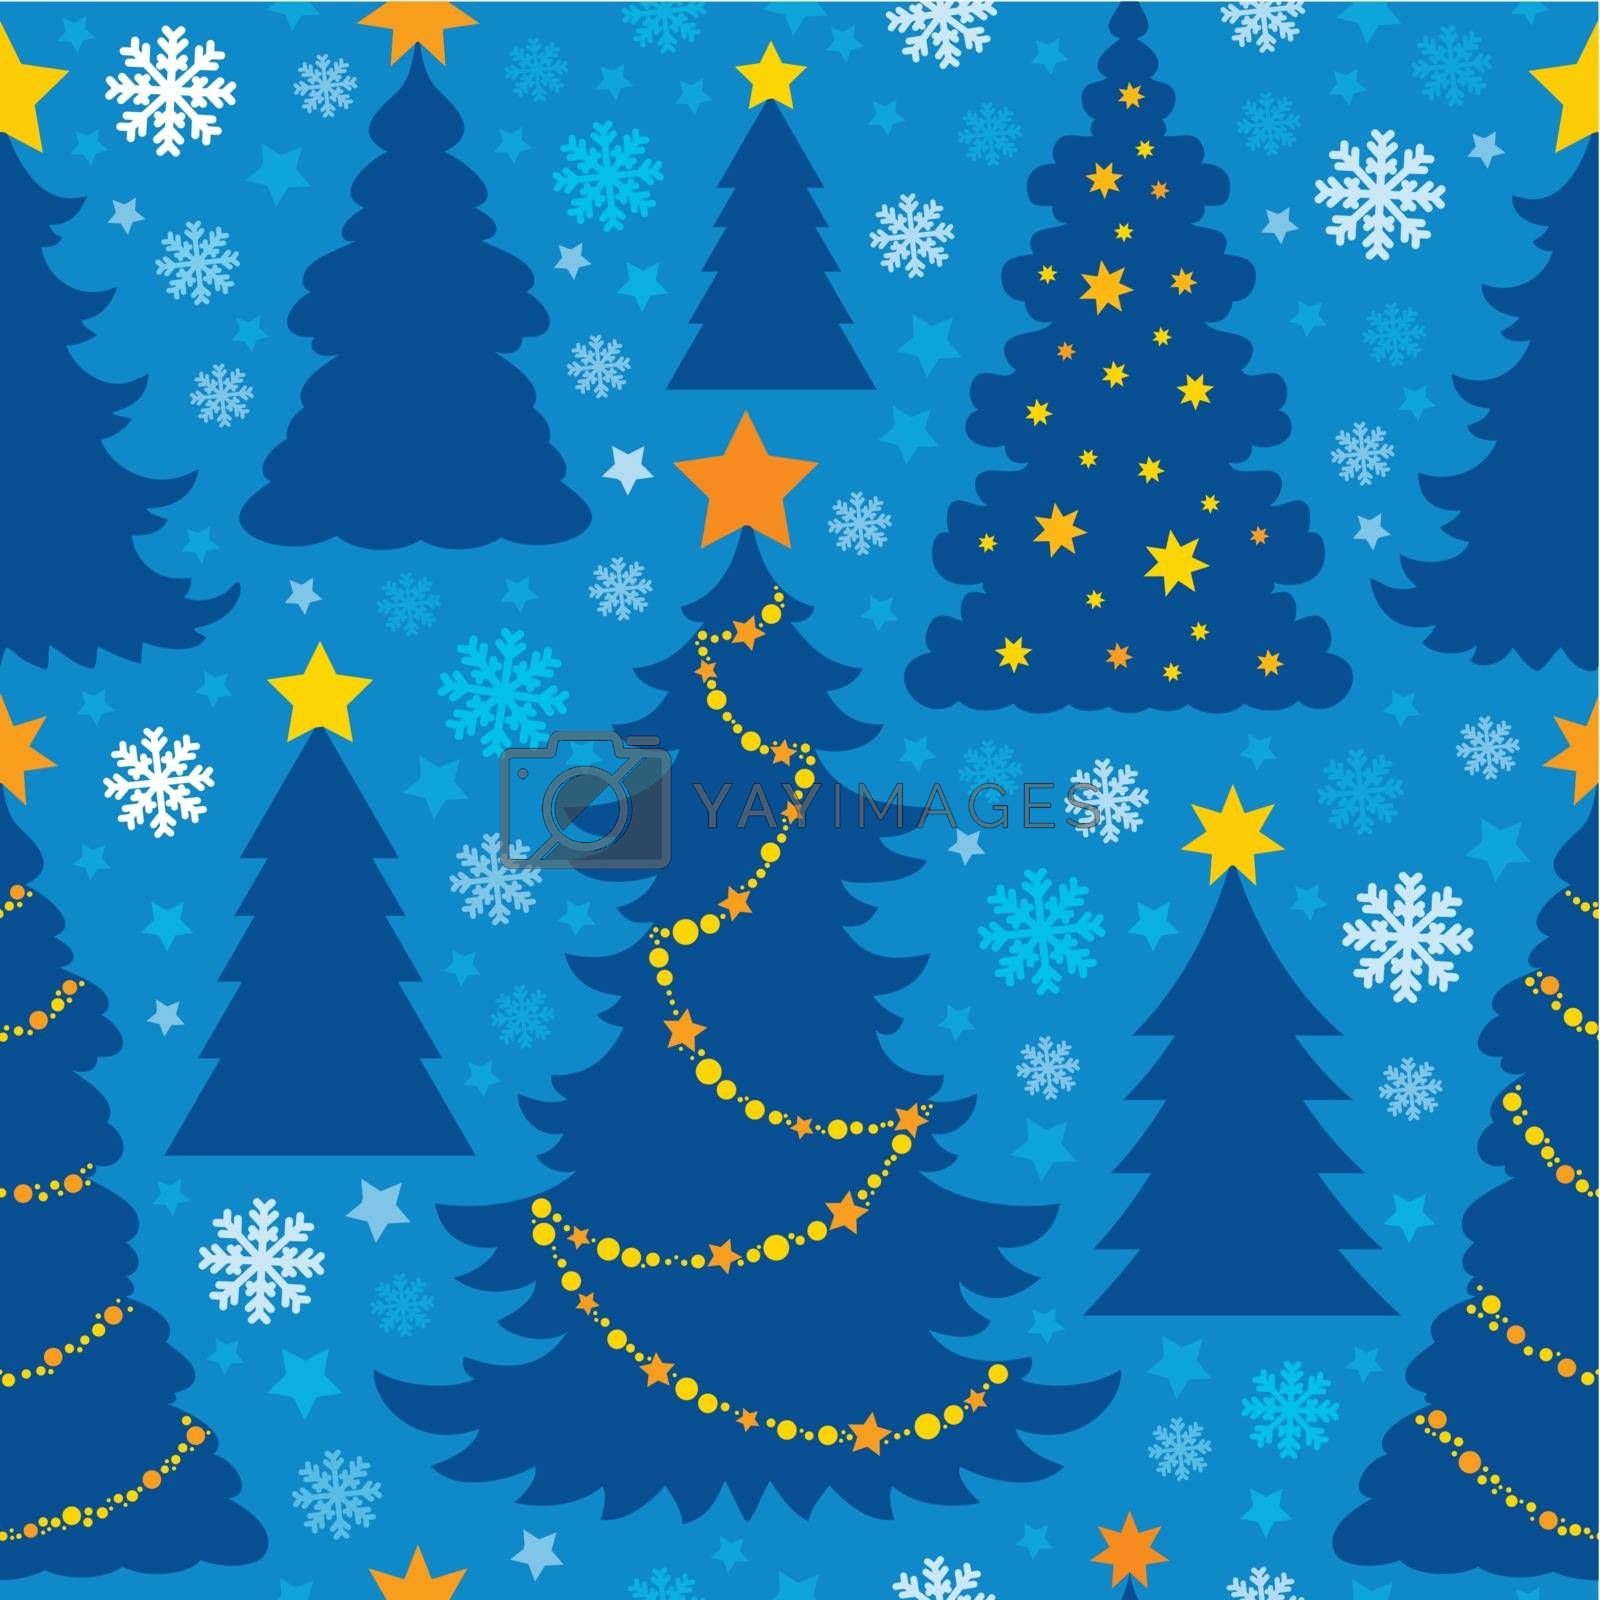 Christmas seamless background 6 - eps10 vector illustration.